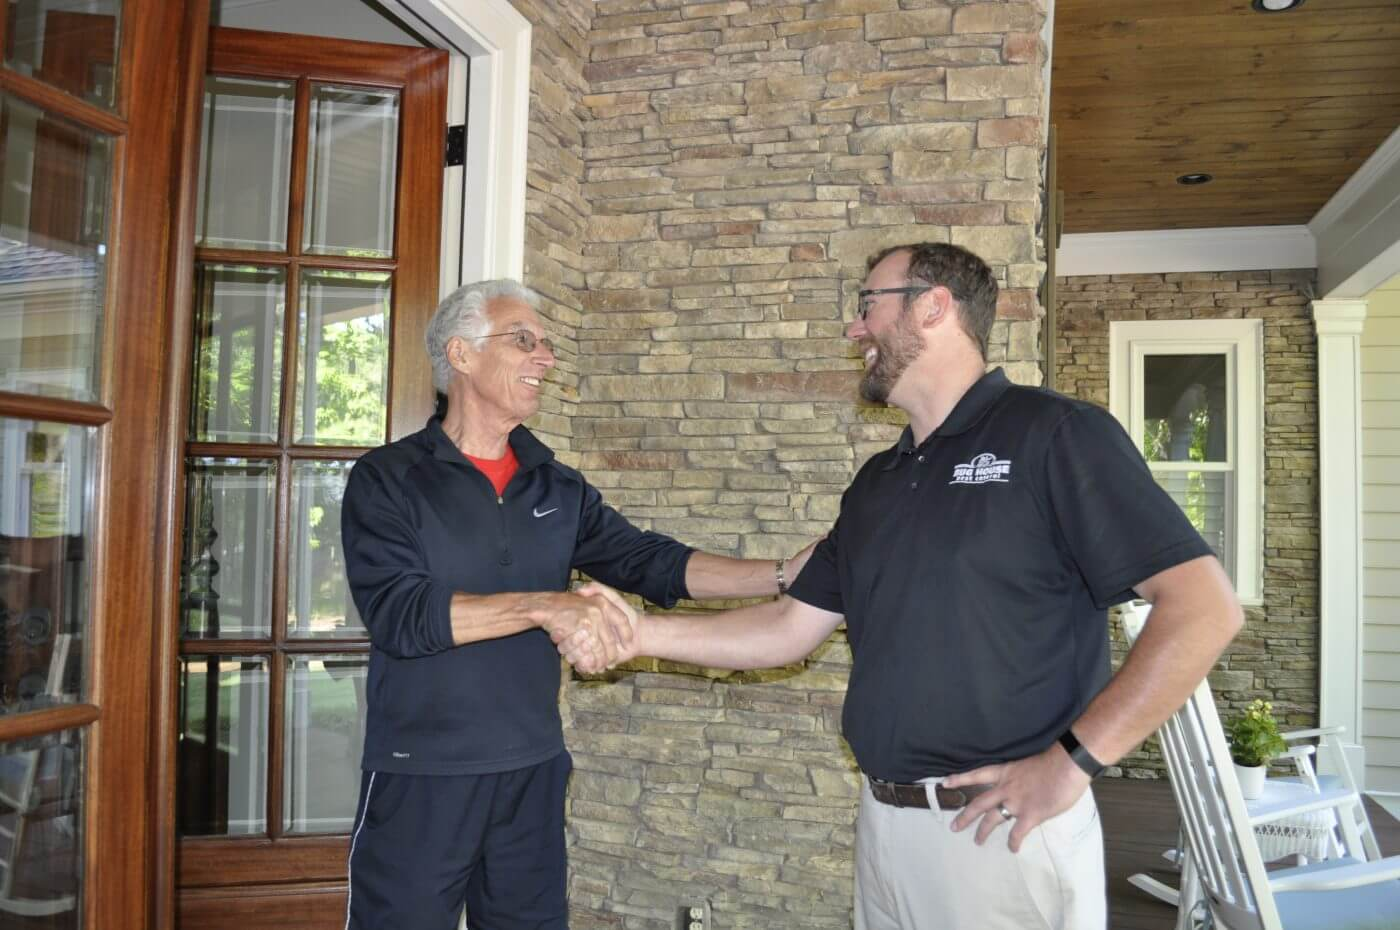 Bug House Lake Oconee pest control employee shaking hands with client